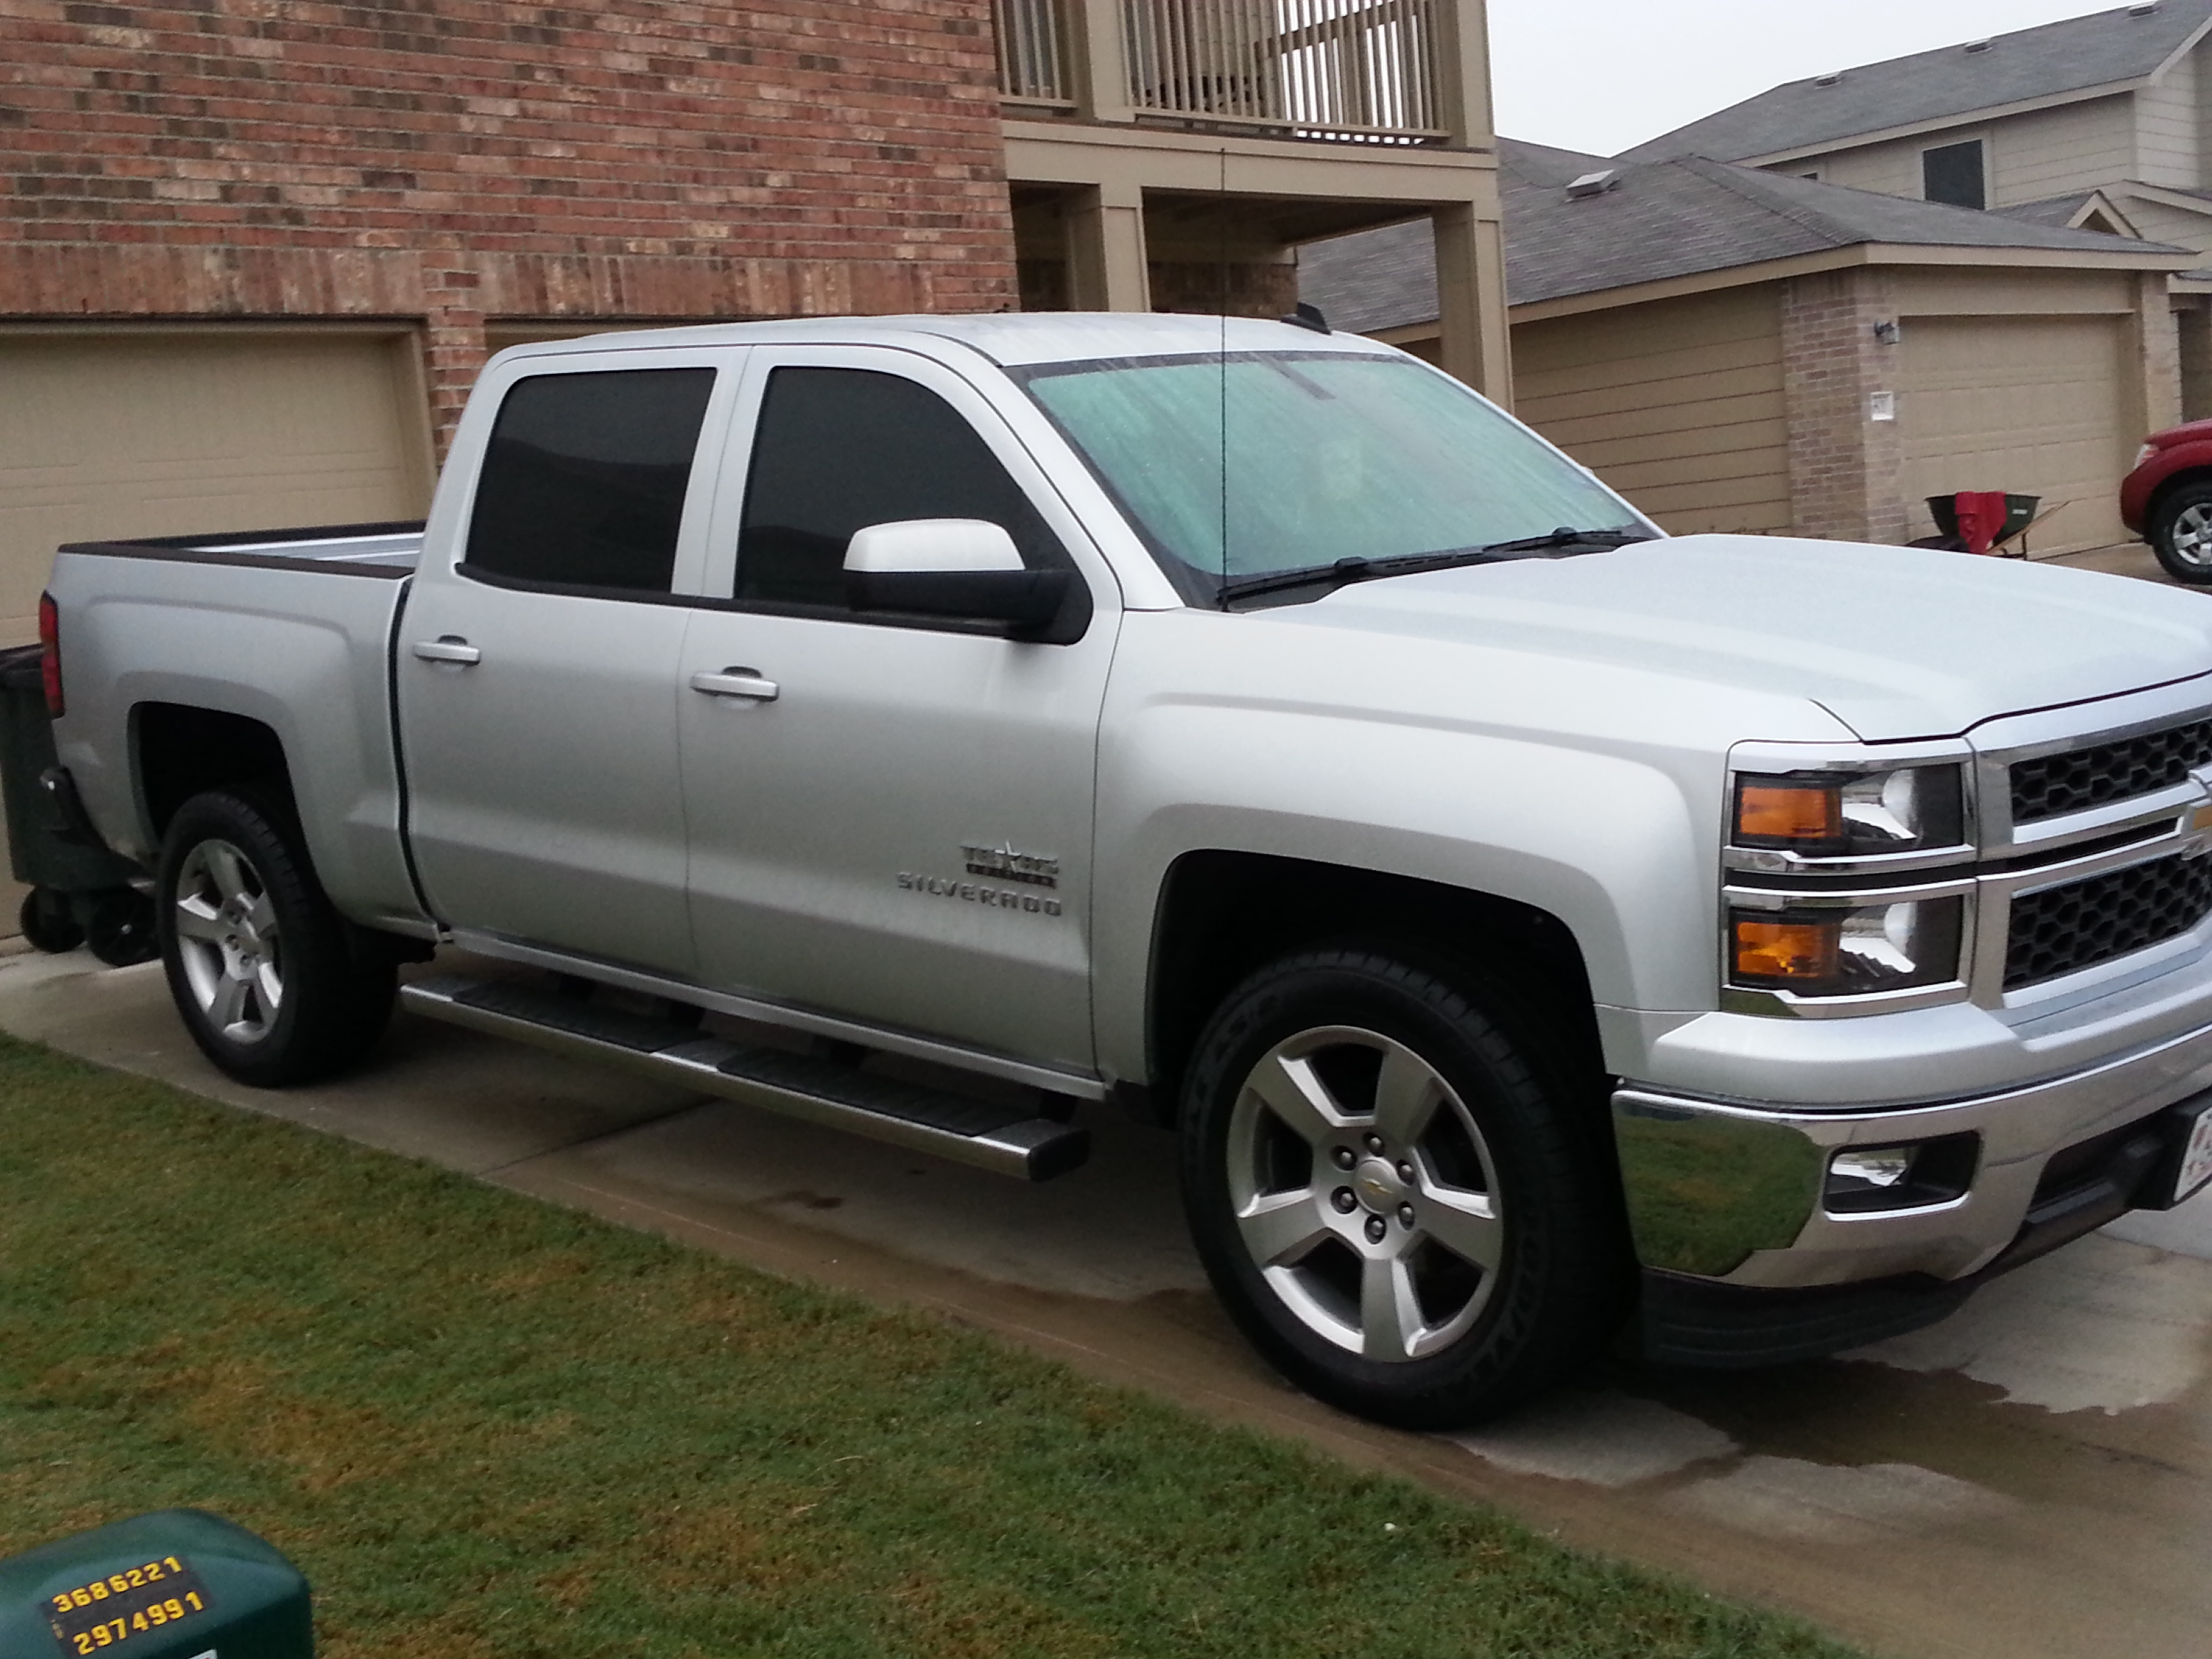 2014 chevrolet silverado 1500 crew cab lt view all 2014 chevrolet silverado 1500 crew cab lt. Black Bedroom Furniture Sets. Home Design Ideas